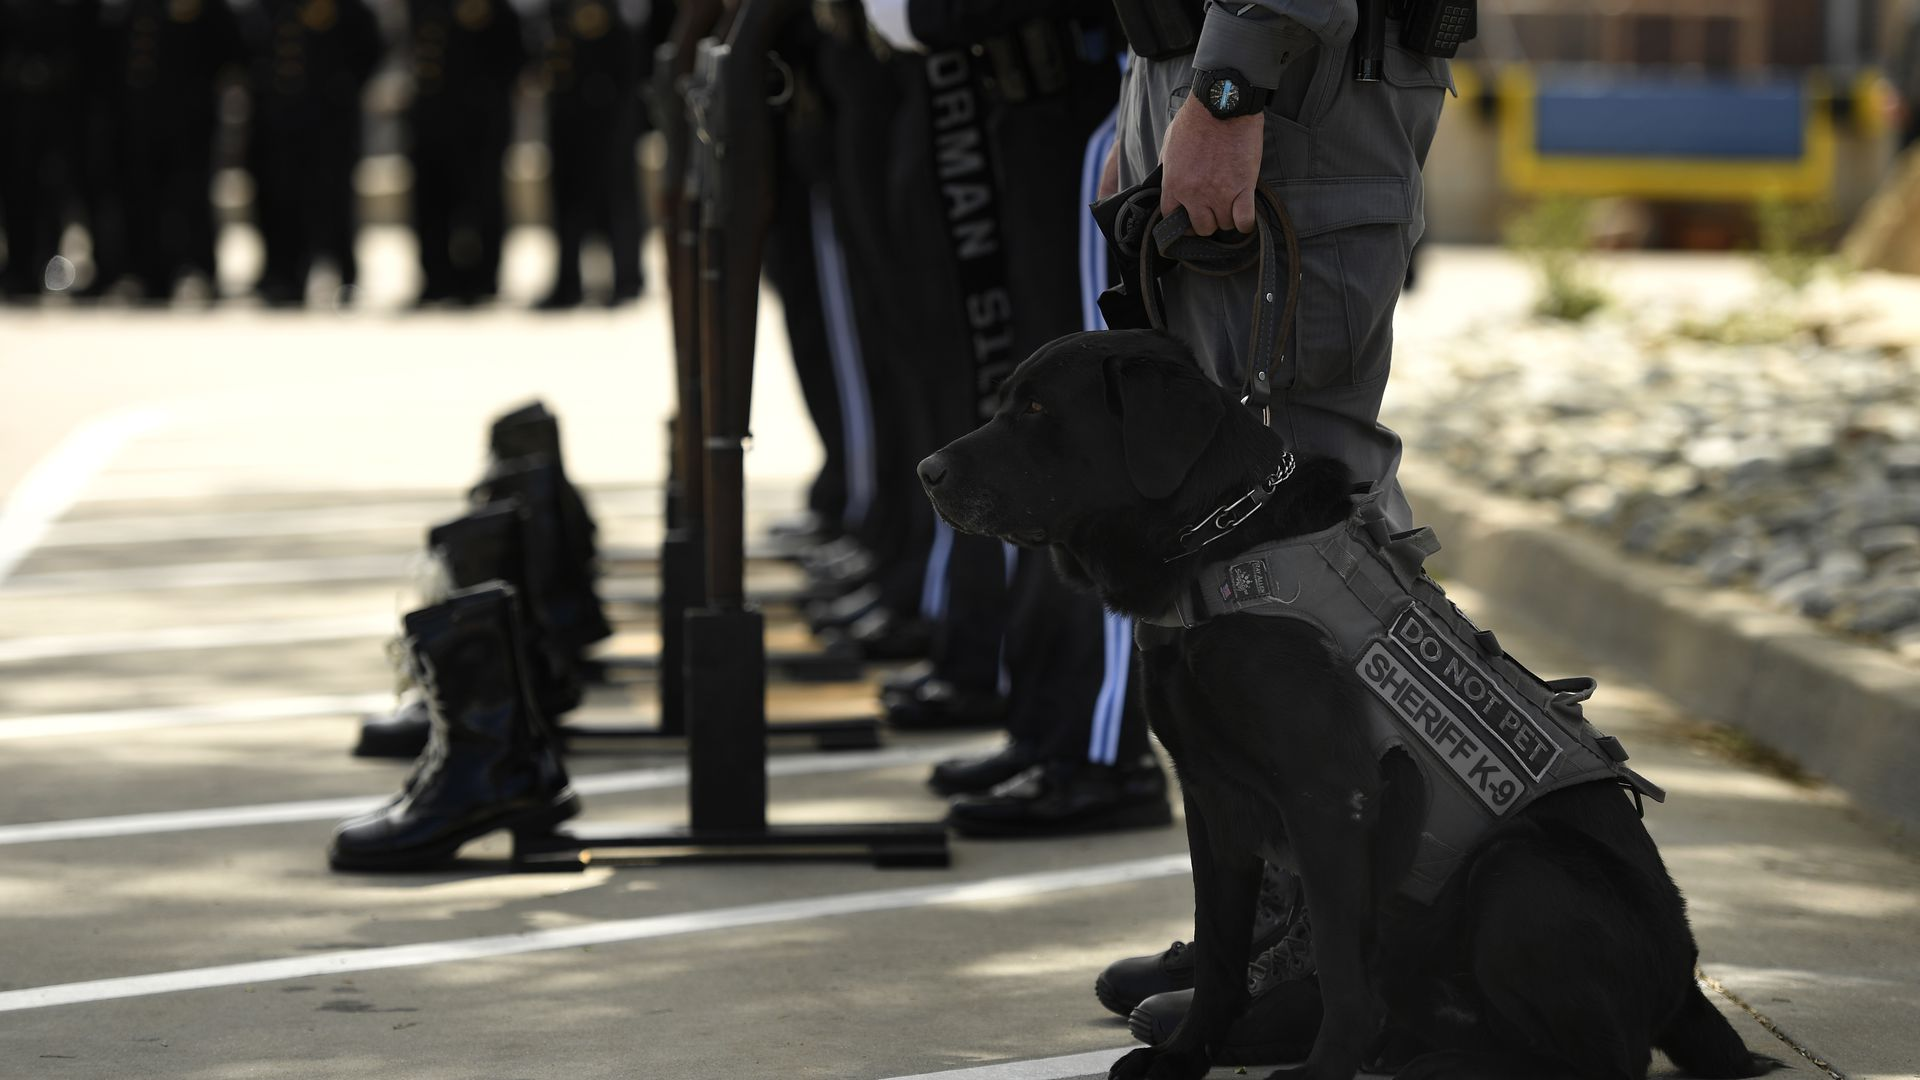 A drug dog sits next to his handler.